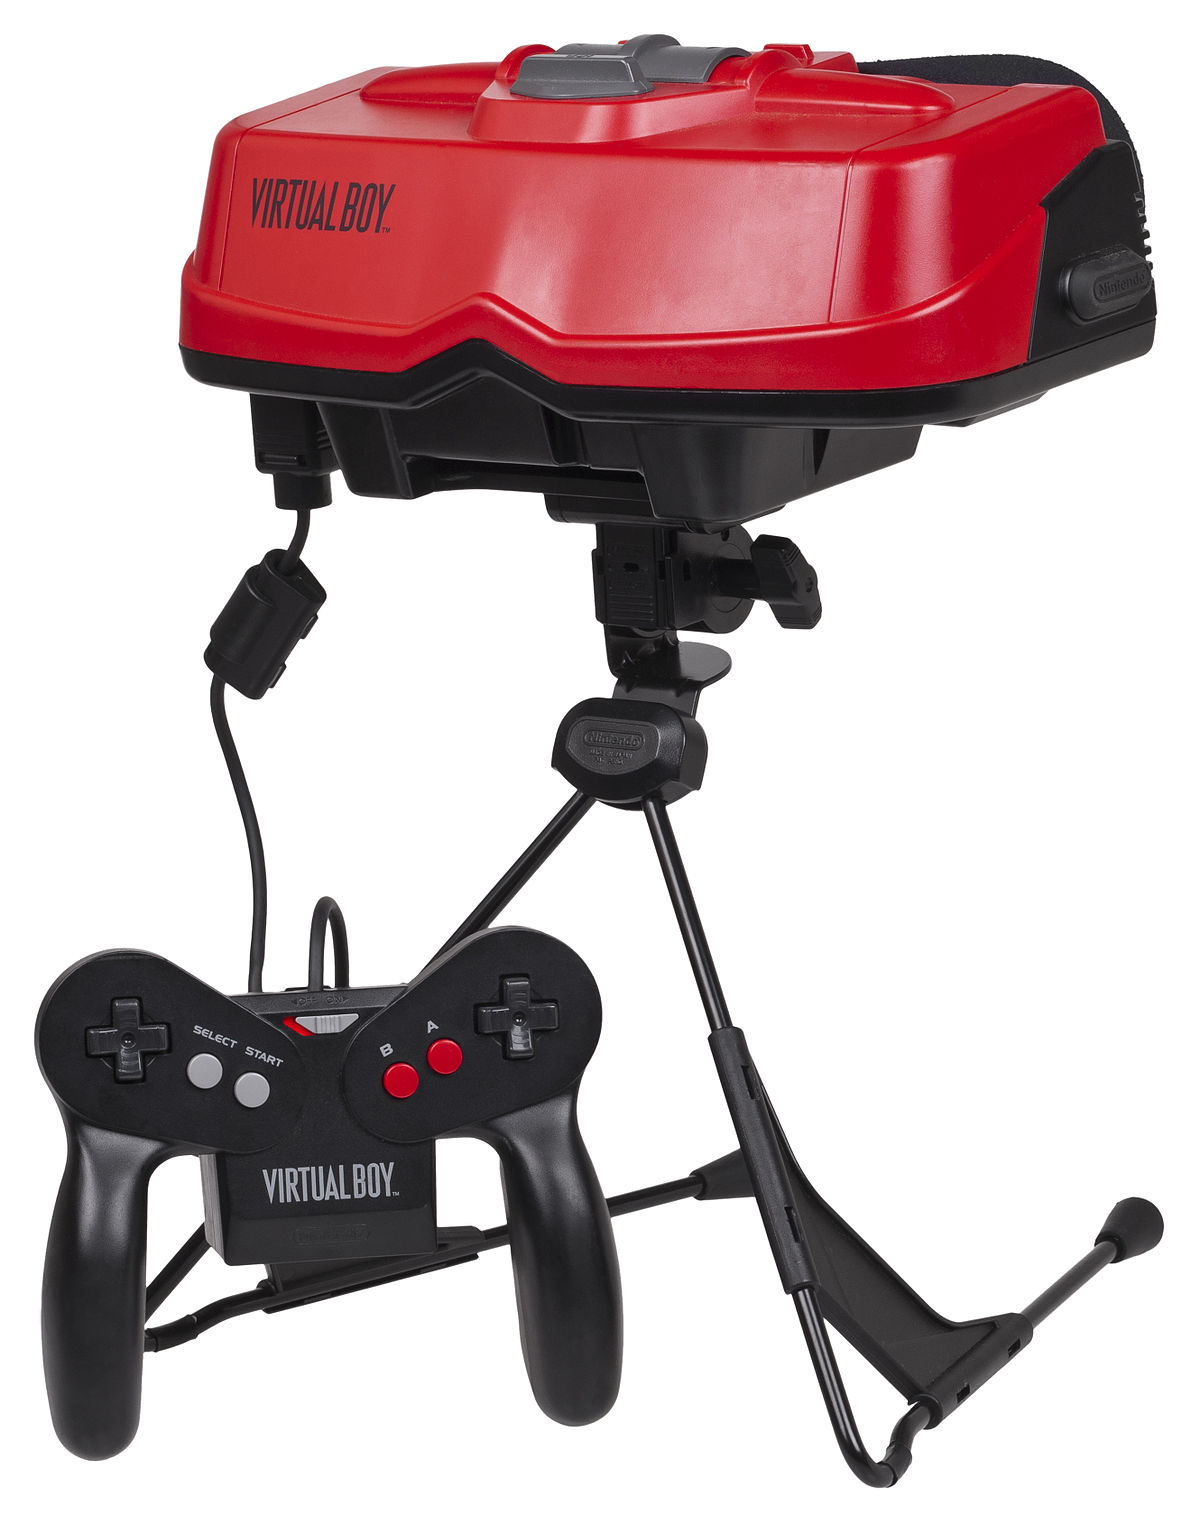 ef20b1d7f399 Virtual Boy - Wikipedia